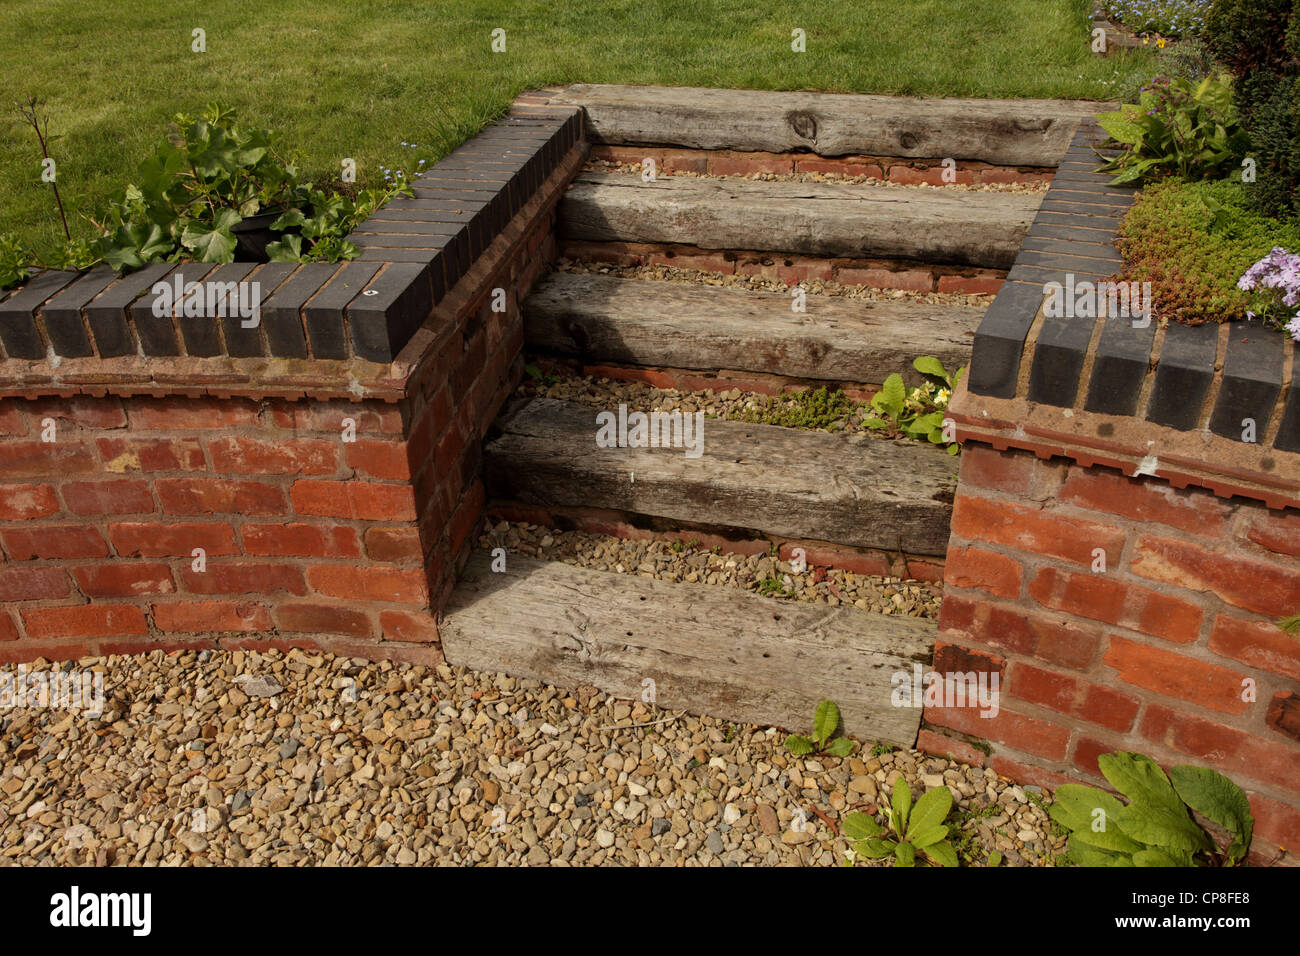 Railway sleepers steps in a garden UK